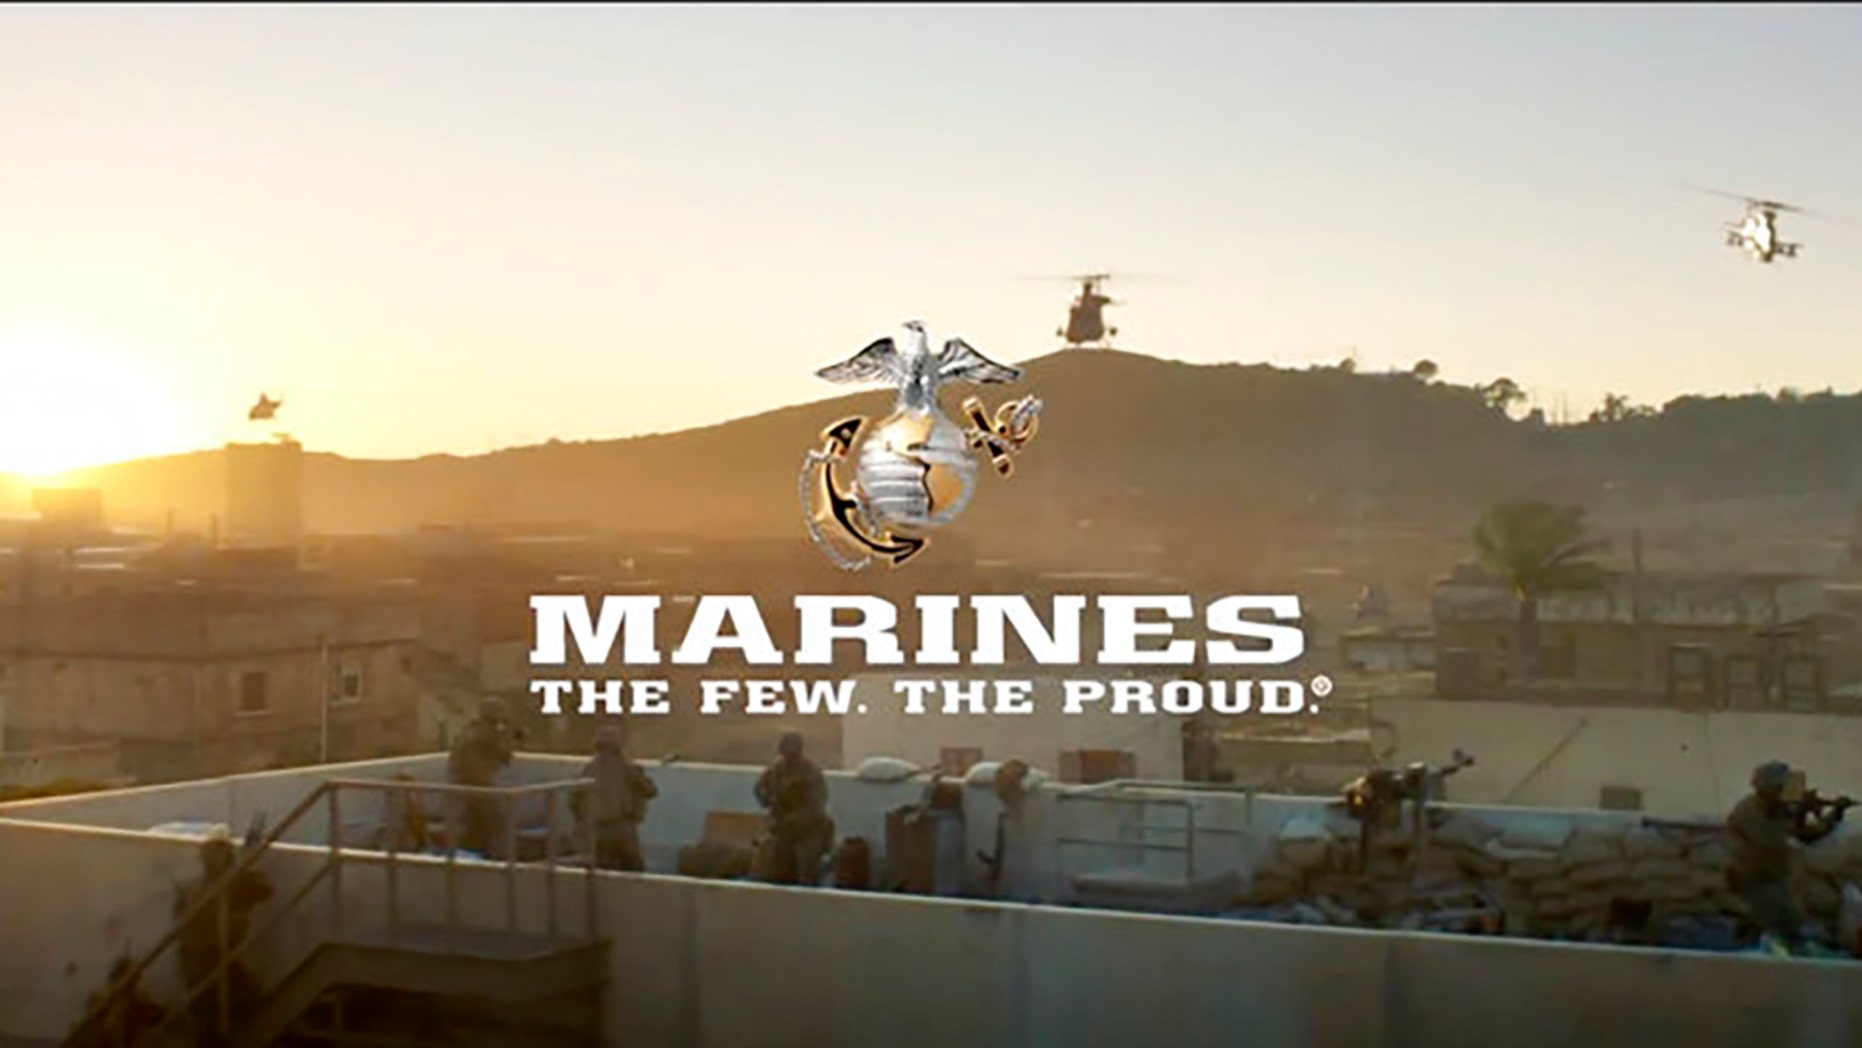 Image from a video expelled by a U.S. Marine Corps.